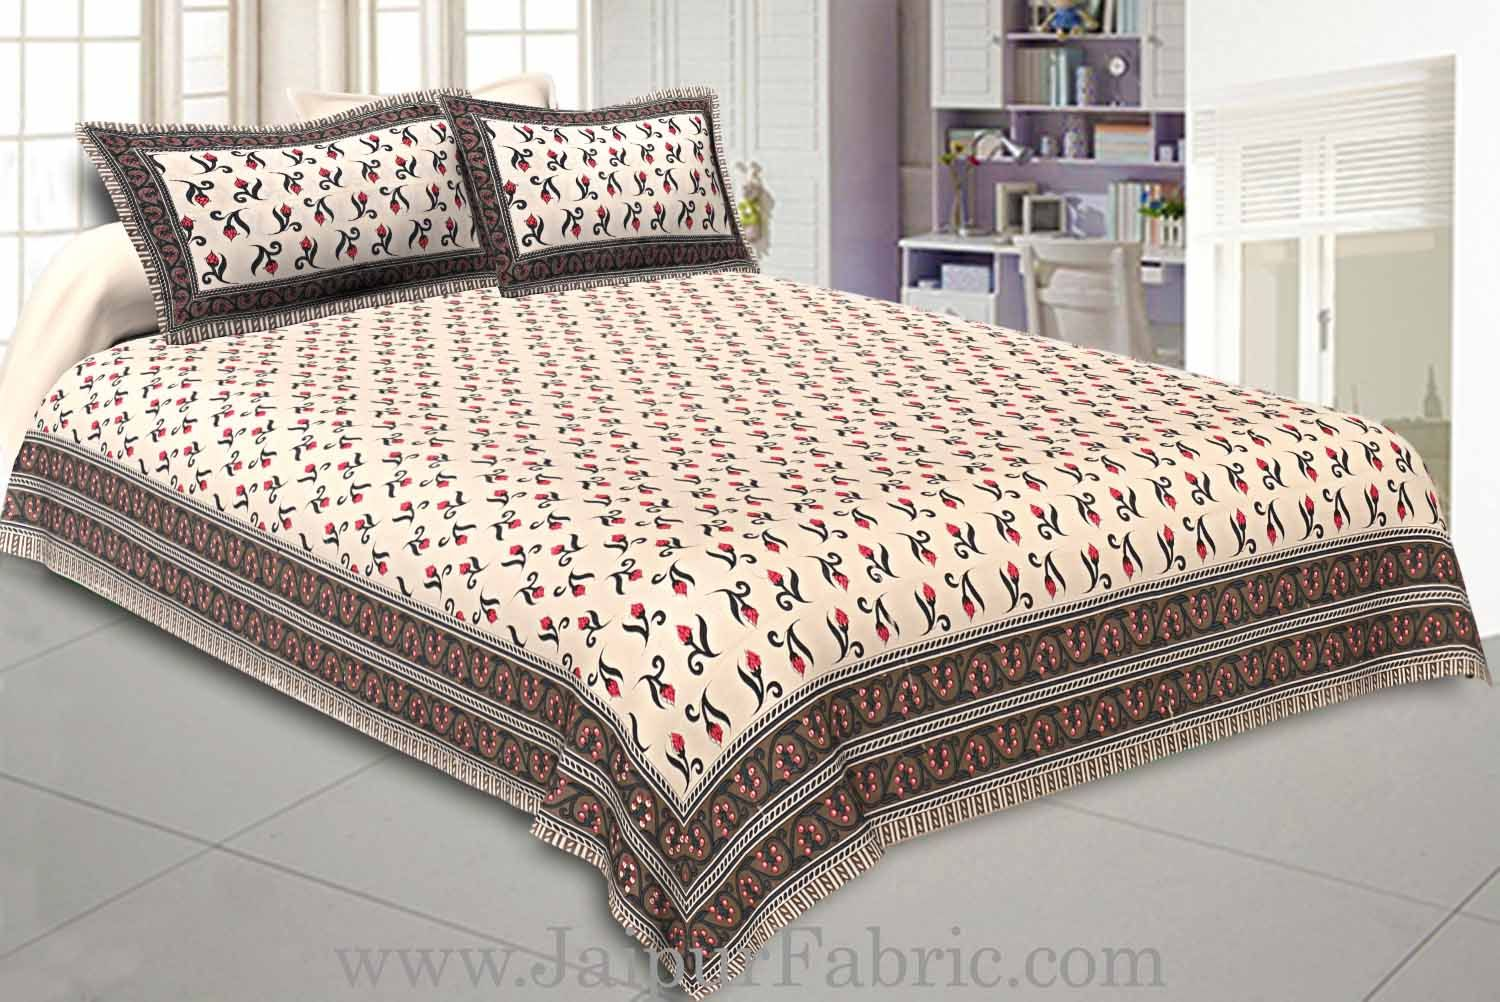 Double Bedsheet Light  Brown Border Small Floral Print With Two Pillow Cover